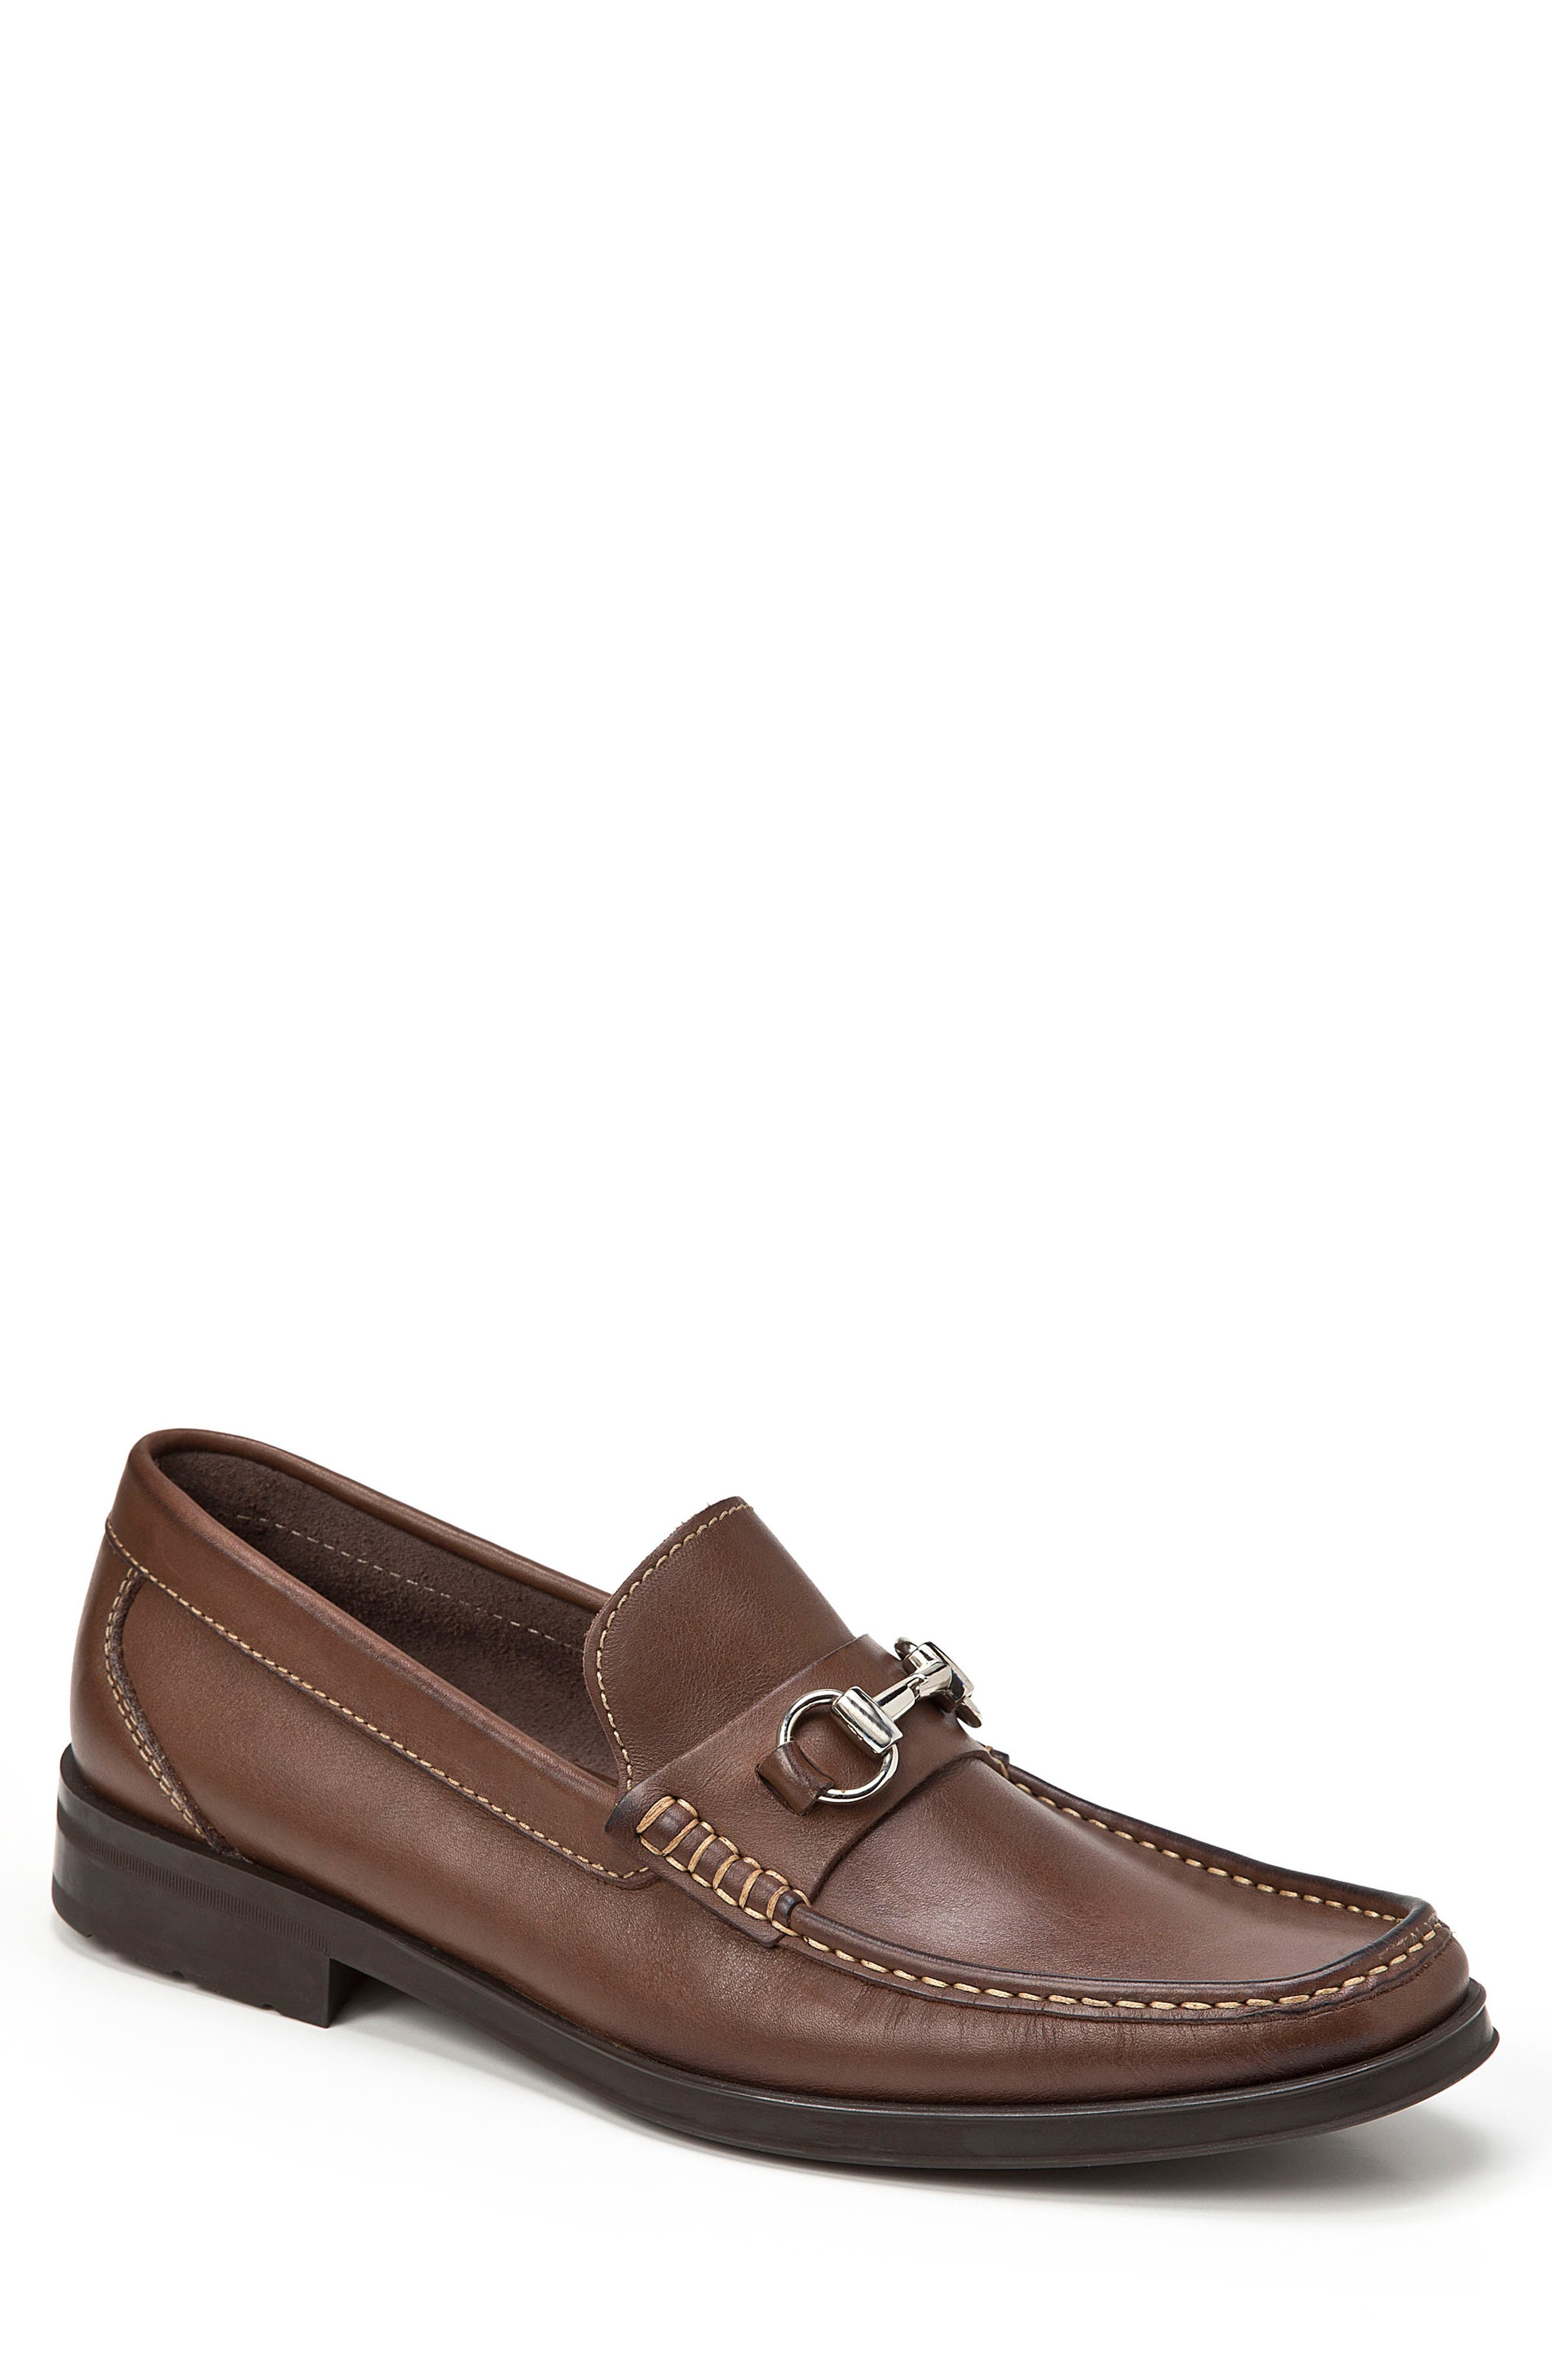 Ernesto Bit Loafer,                             Main thumbnail 1, color,                             Brown